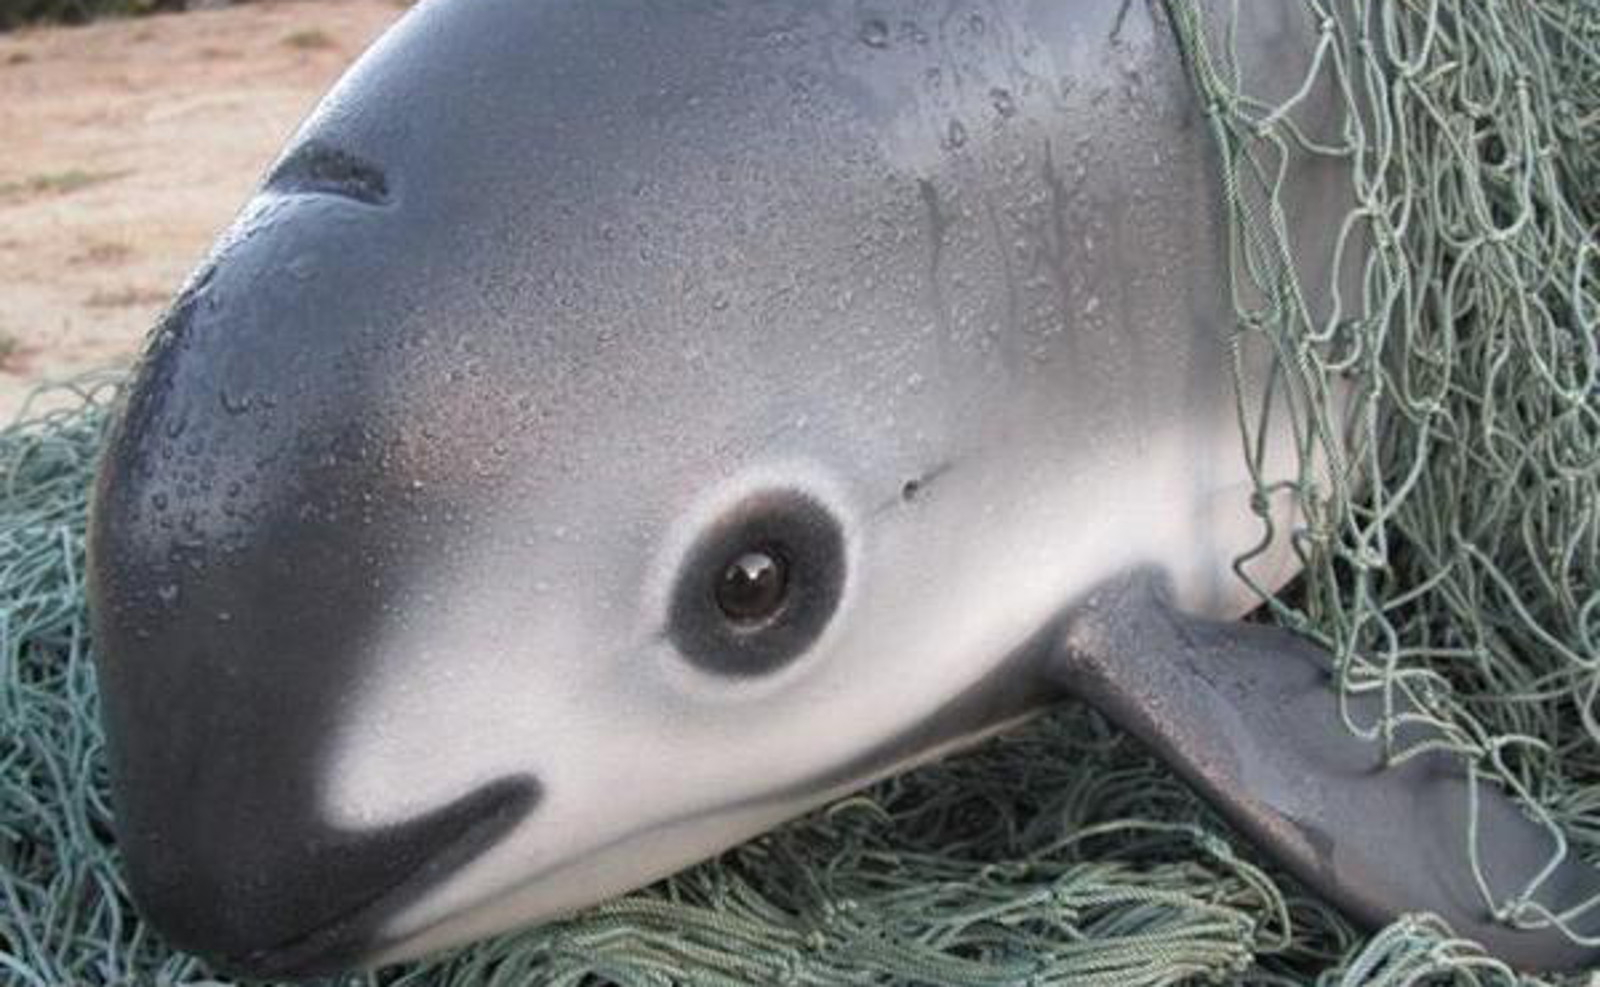 What?! Demand for Fish Swim Bladders In China Is Driving 2 Marine Species In Mexico to Extinction